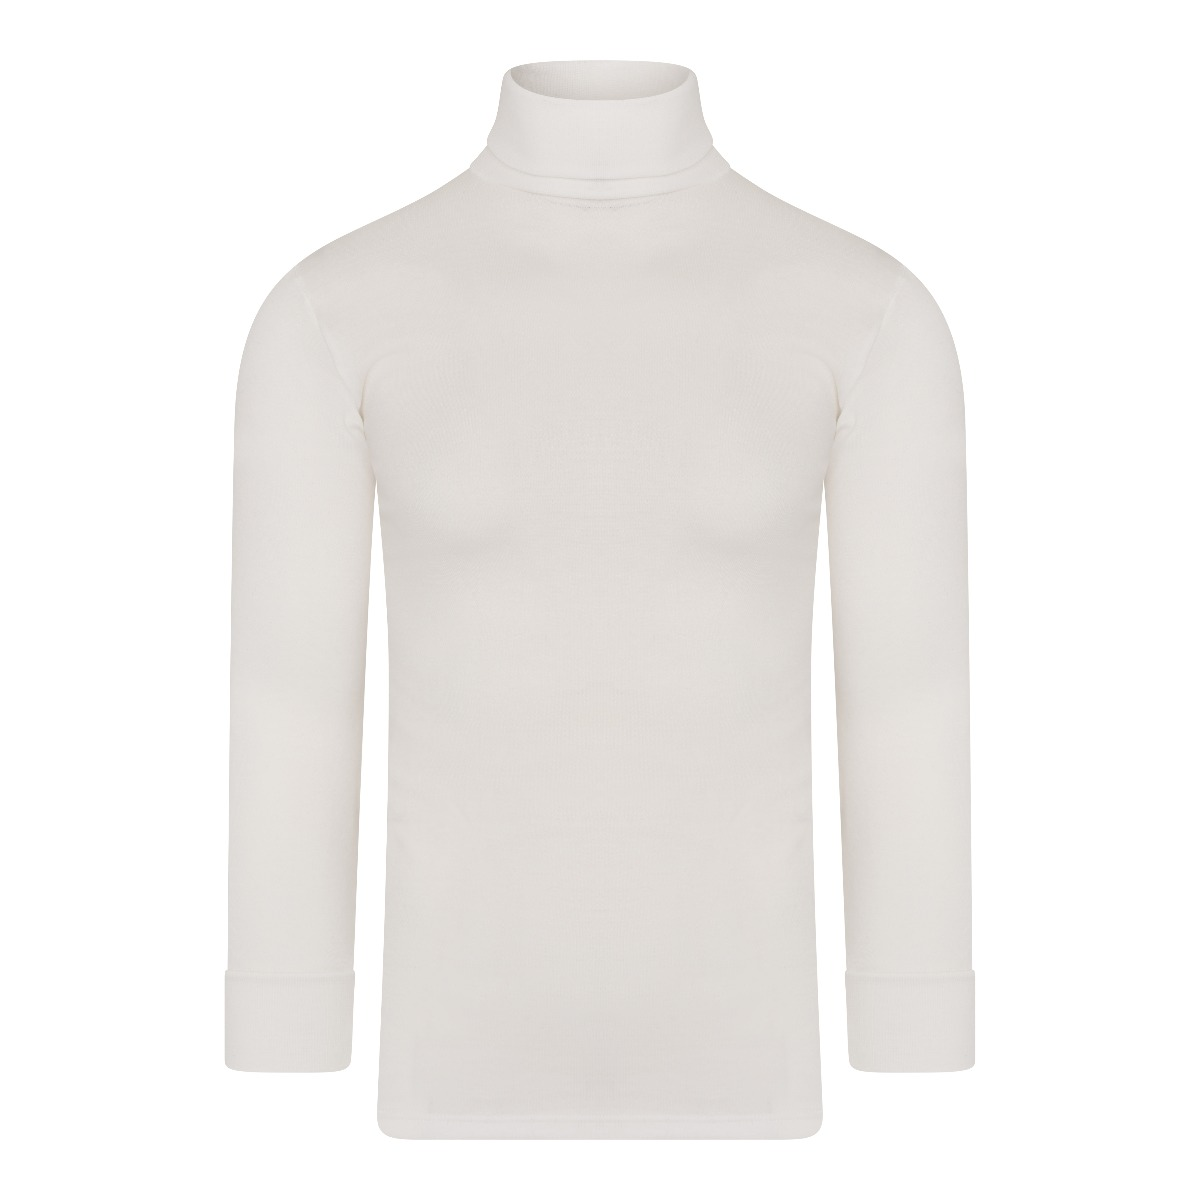 Beeren Thermo Unisex Shirt Col Lange Mouw Wolwit XL